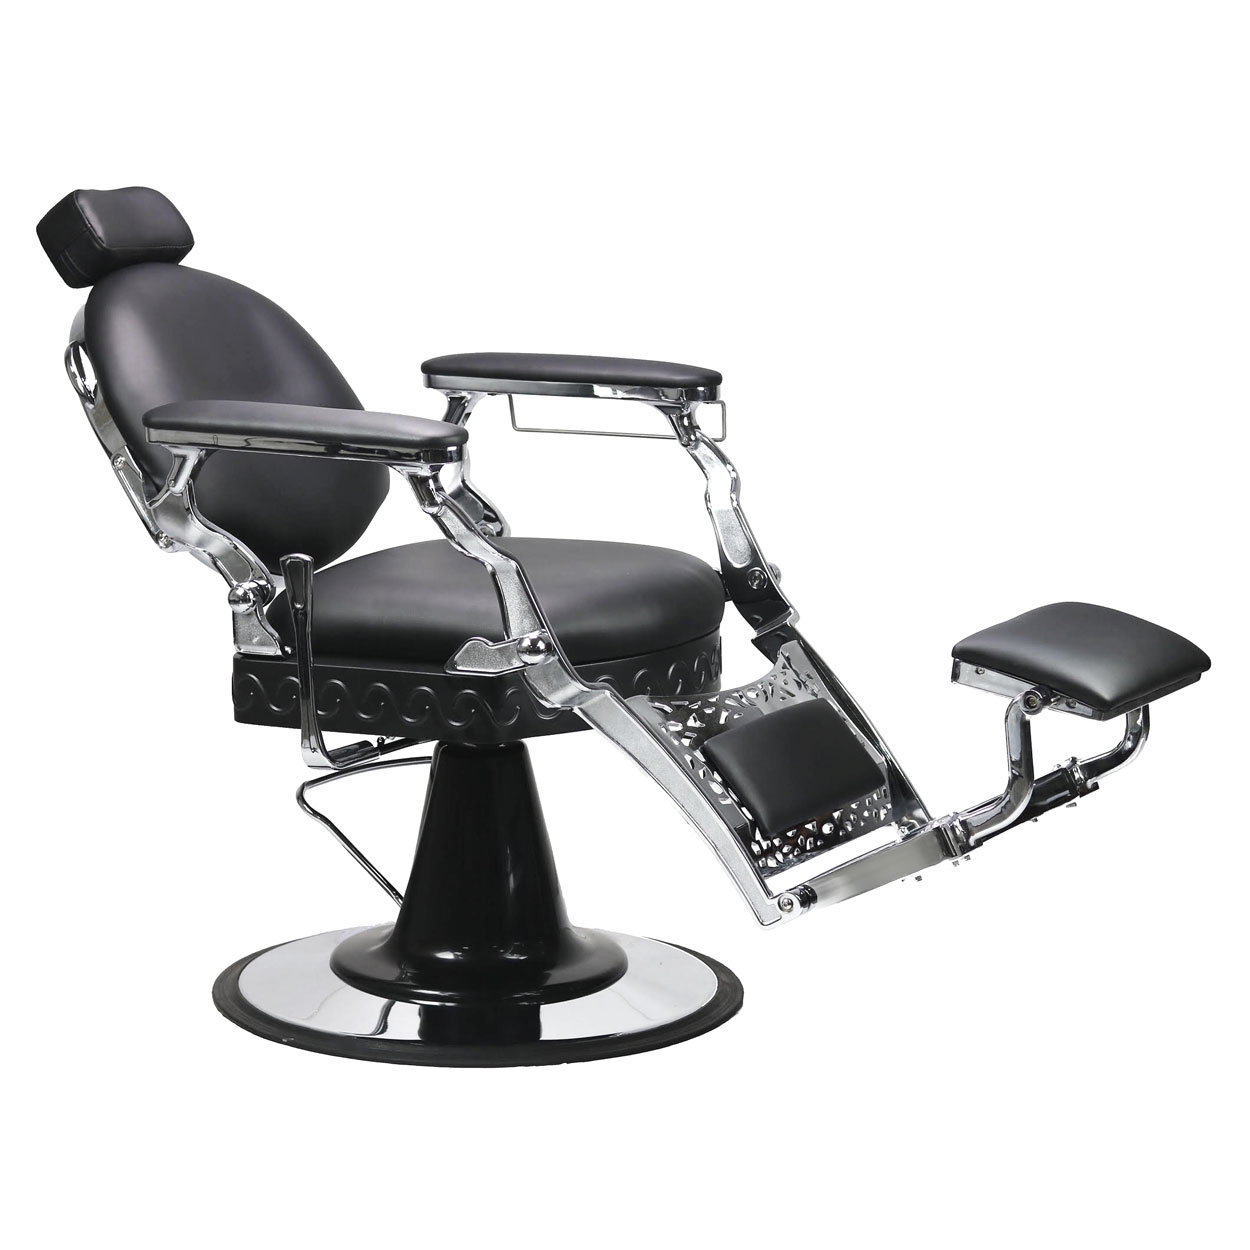 Sutton Vintage Barber Chair alternative product image 3